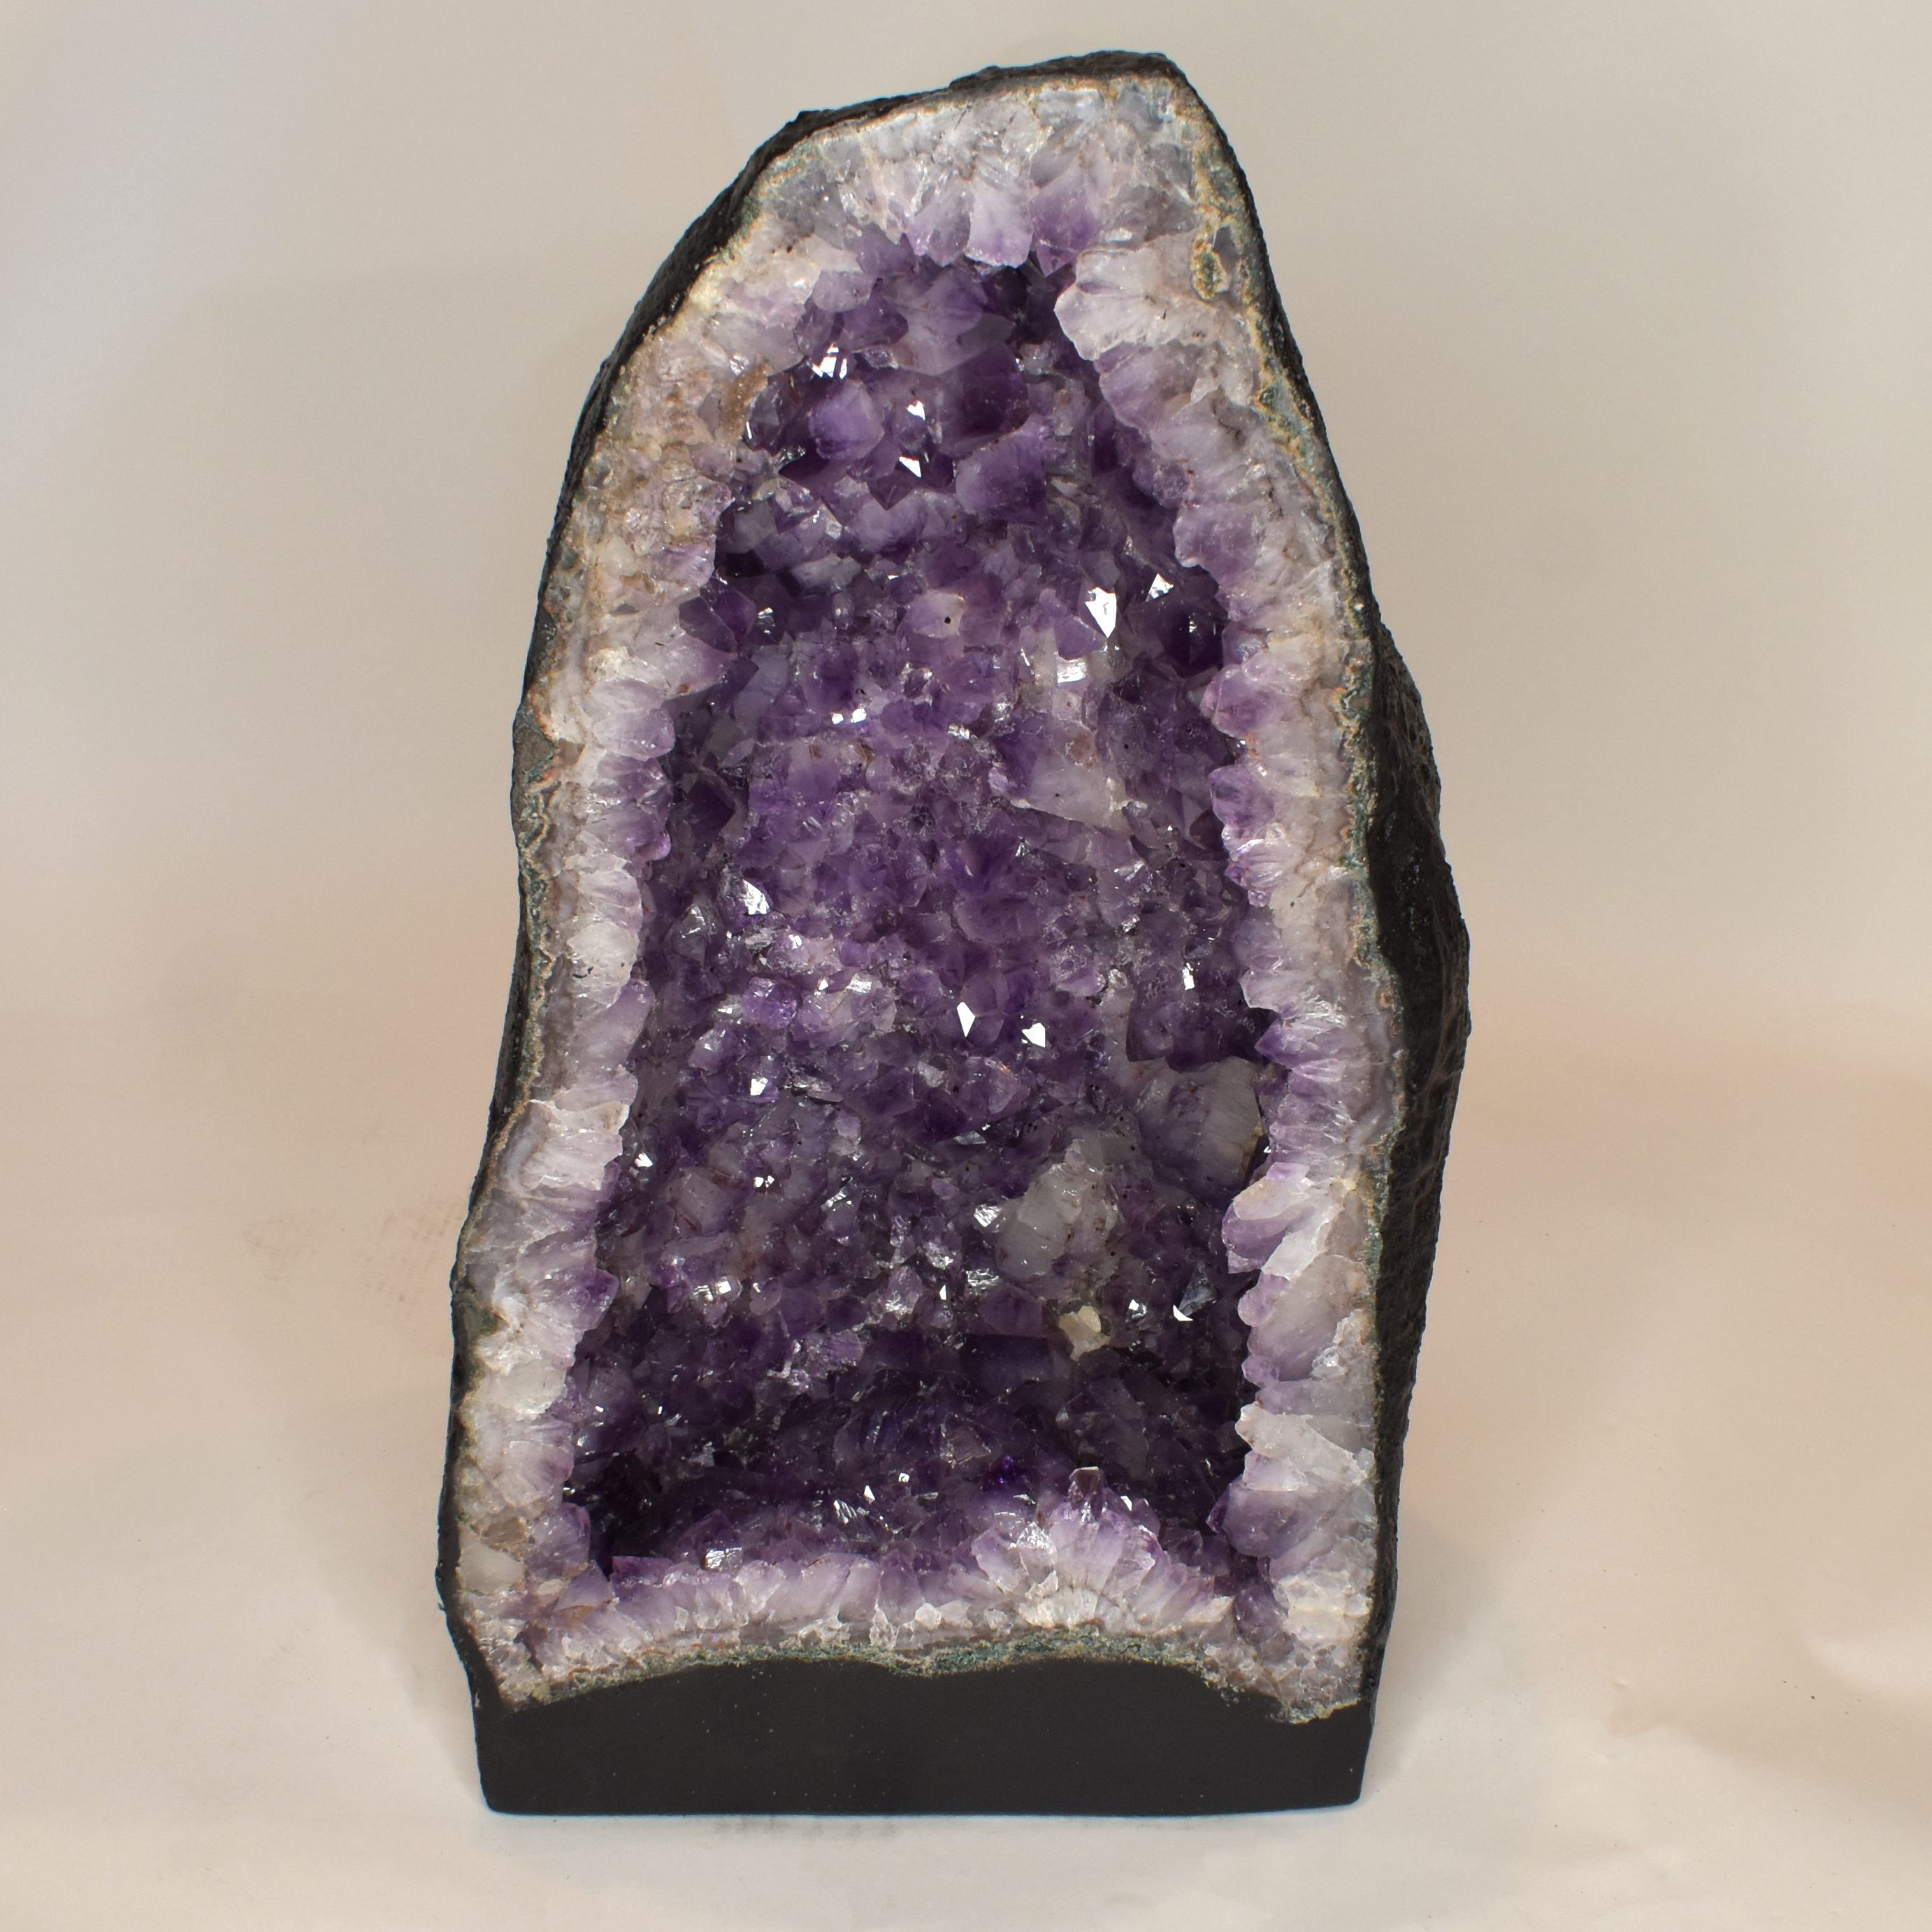 Wholesale Crystals Sydney Natural Amethyst Geode Cave